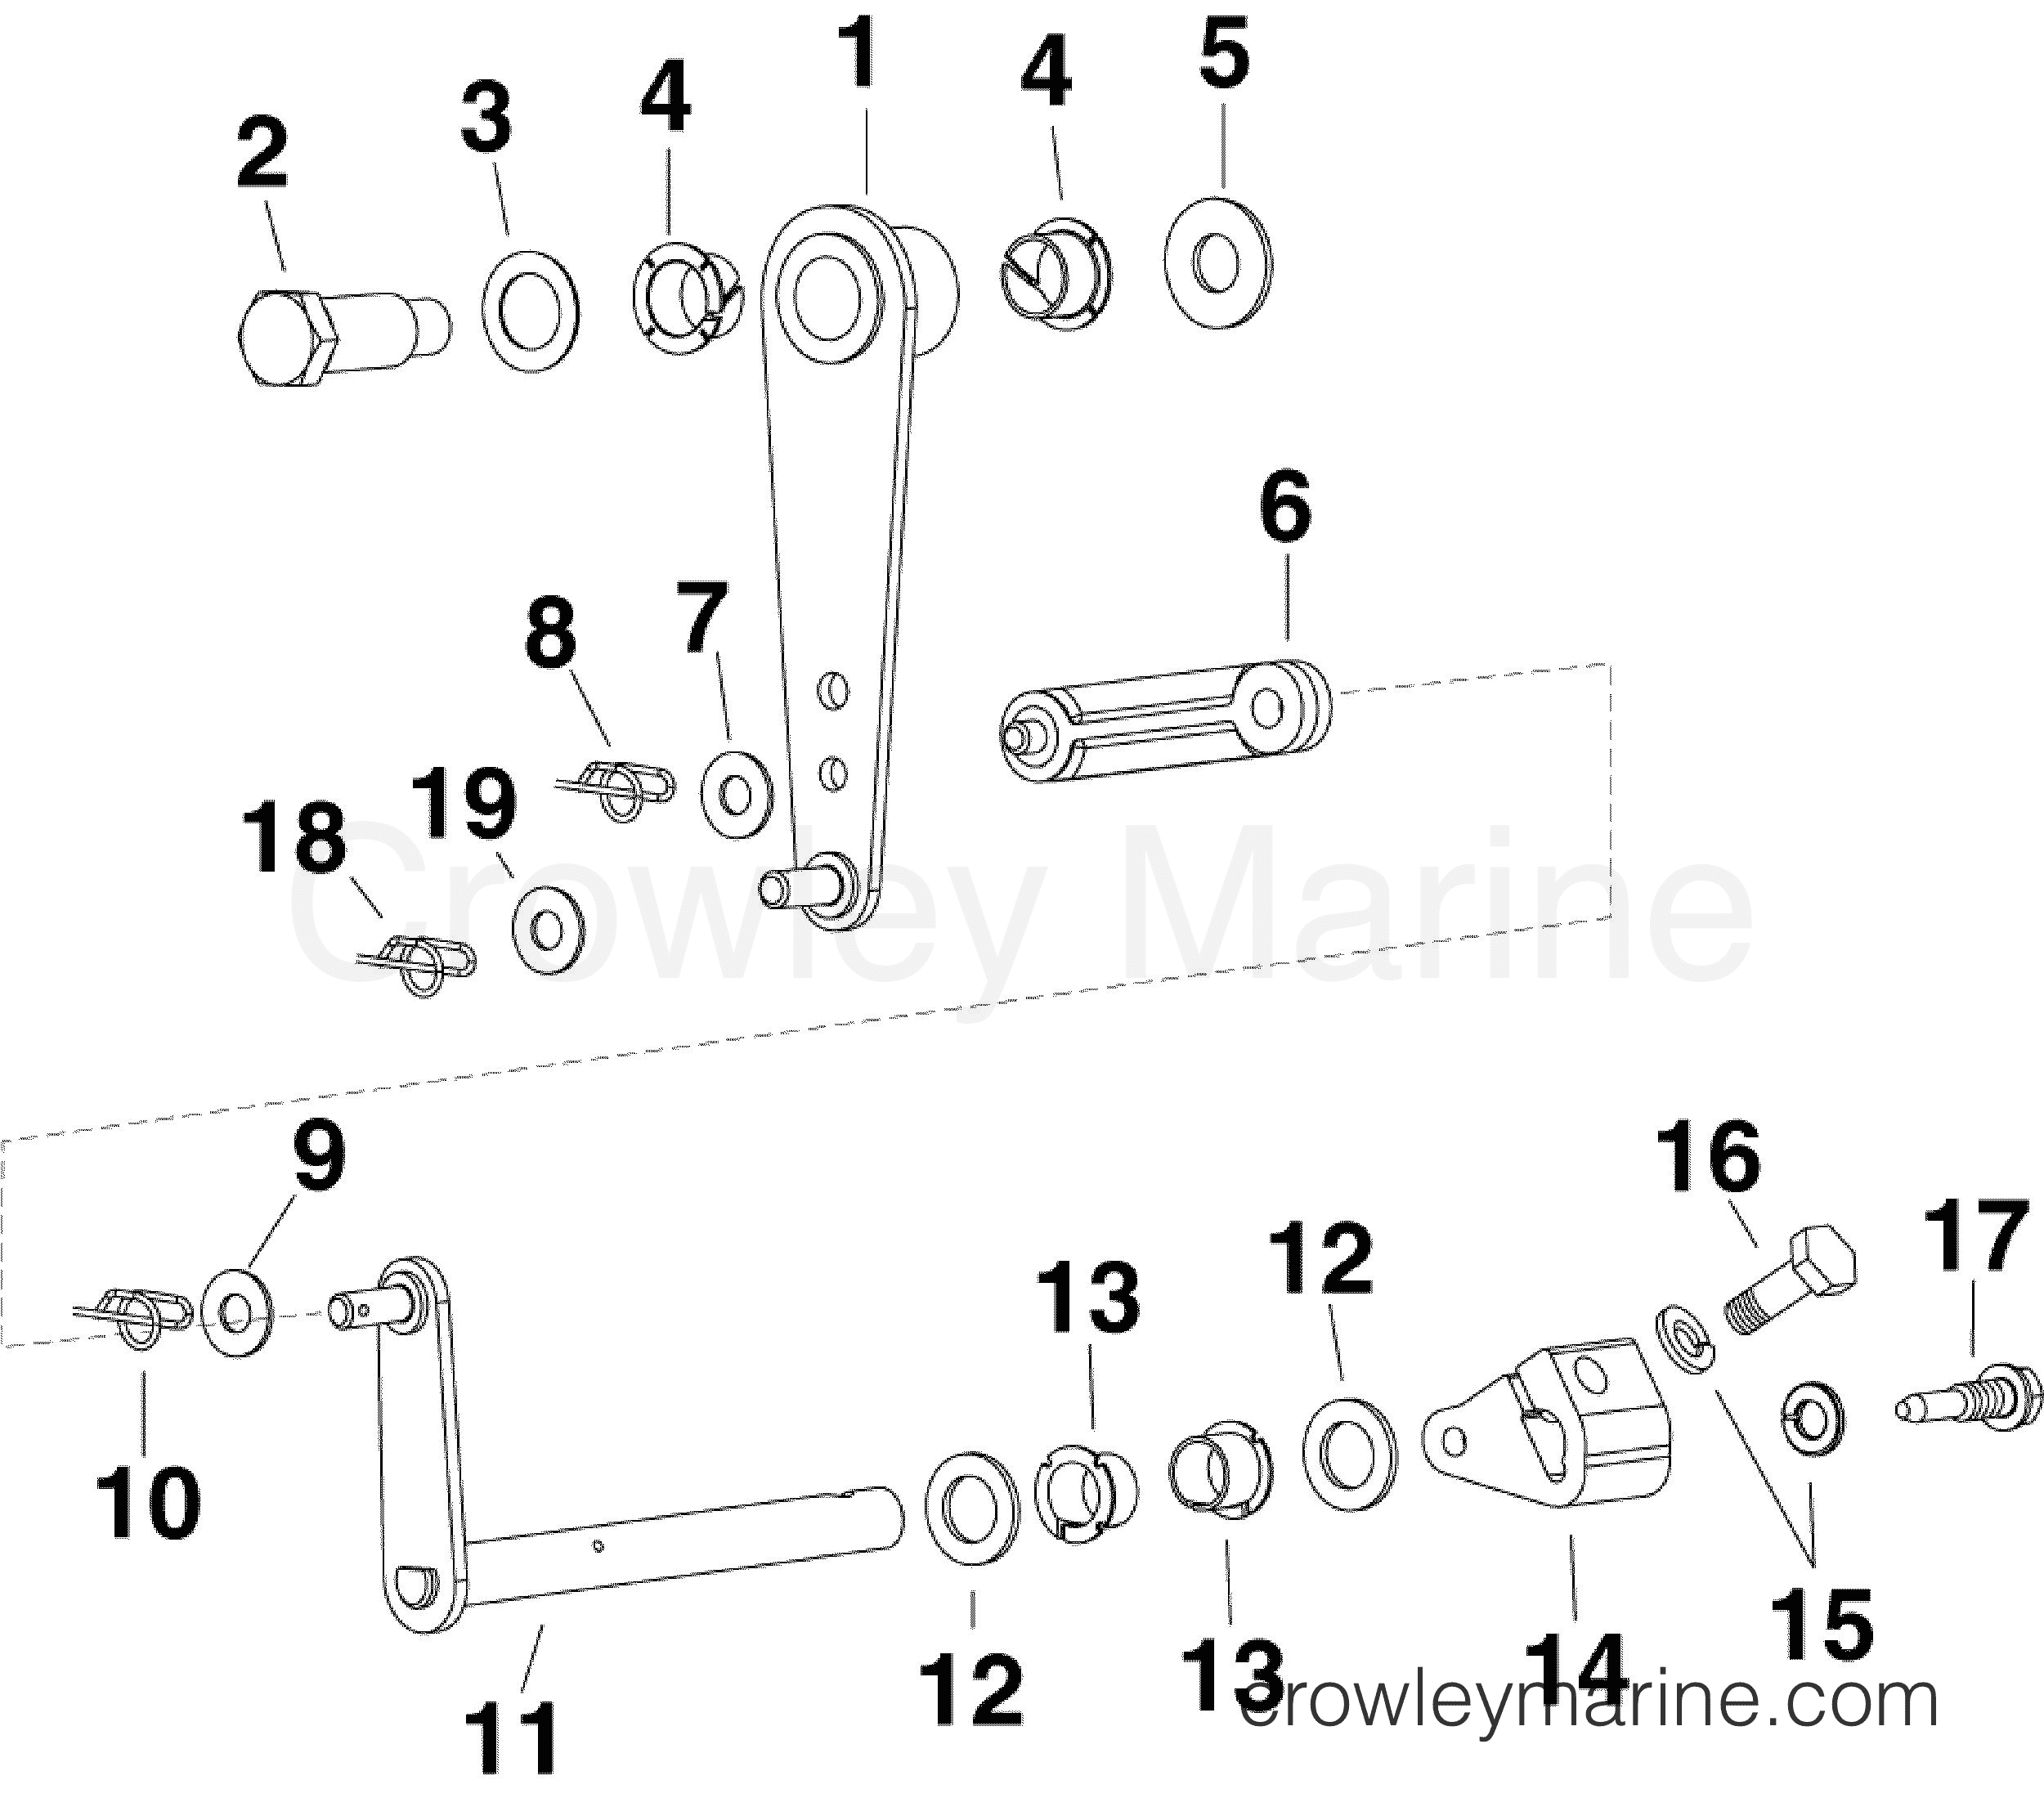 Ford Transmission Linkage Diagram Shift Harley Electrical Wiring Diagrams 2500x2199